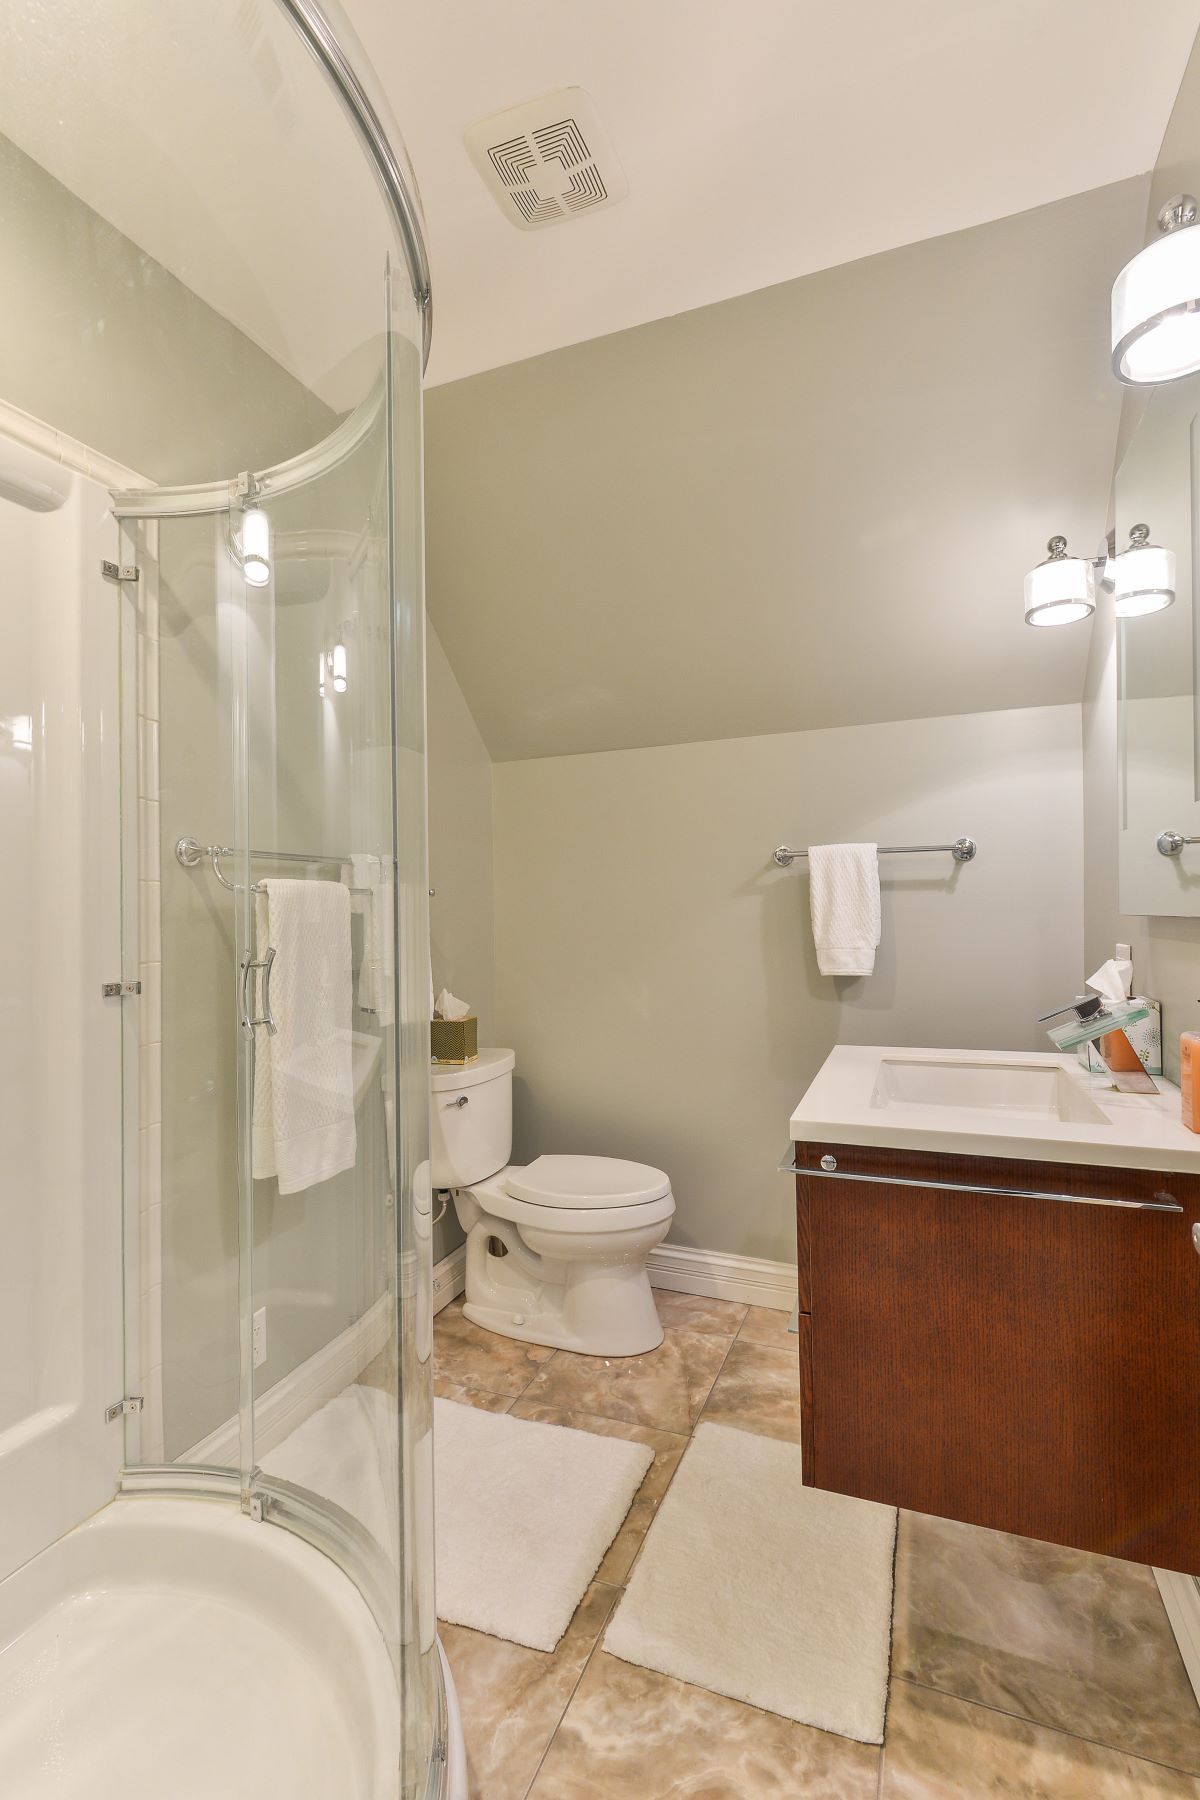 Additional photo for property listing at 2917 Cliffwynde Trace  Louisville, Kentucky 40241 United States